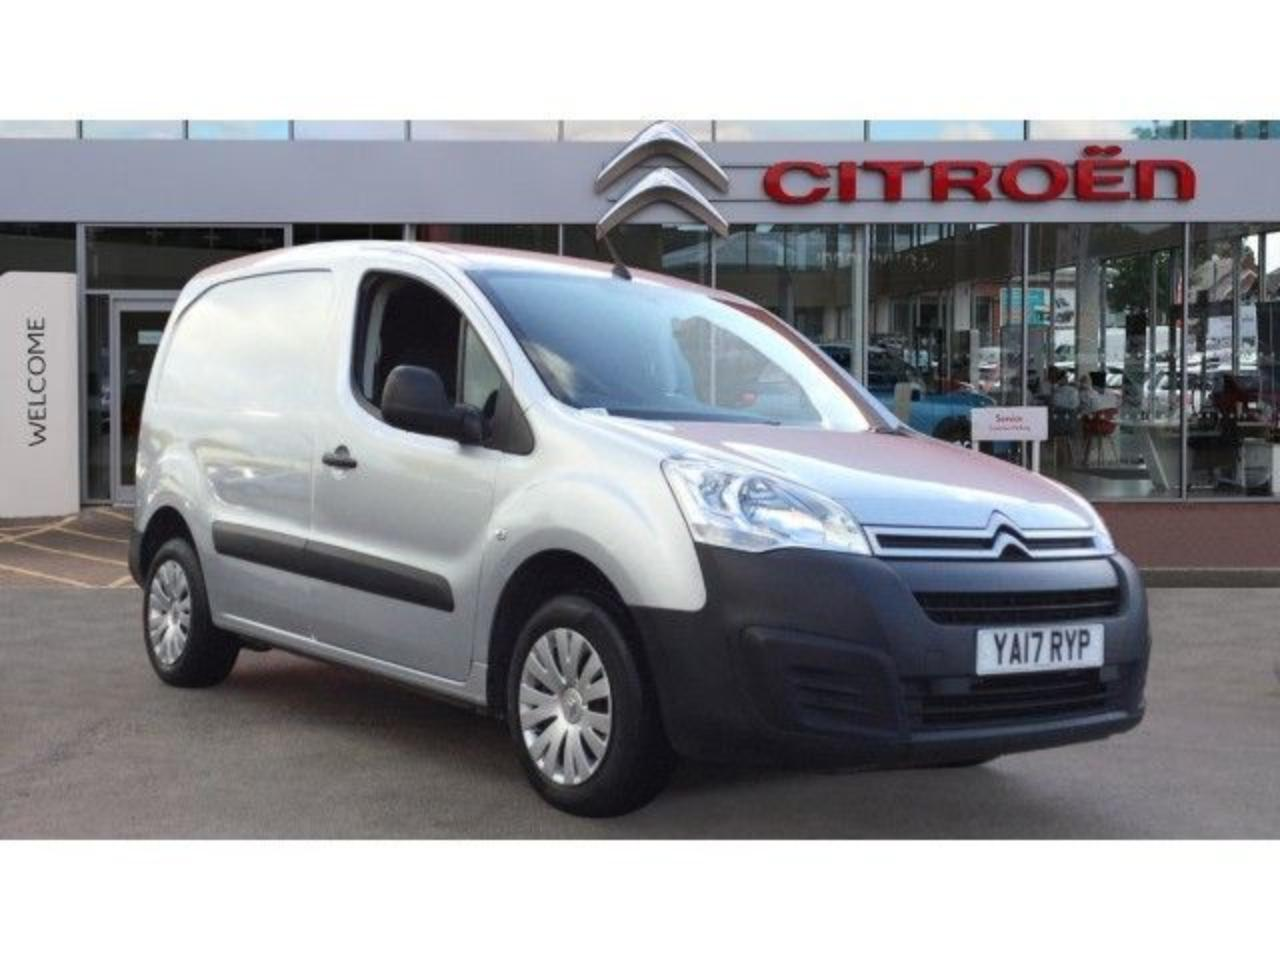 Citroën Berlingo L1 Diesel 1.6 Bluehdi 850Kg Enterprise 100Ps